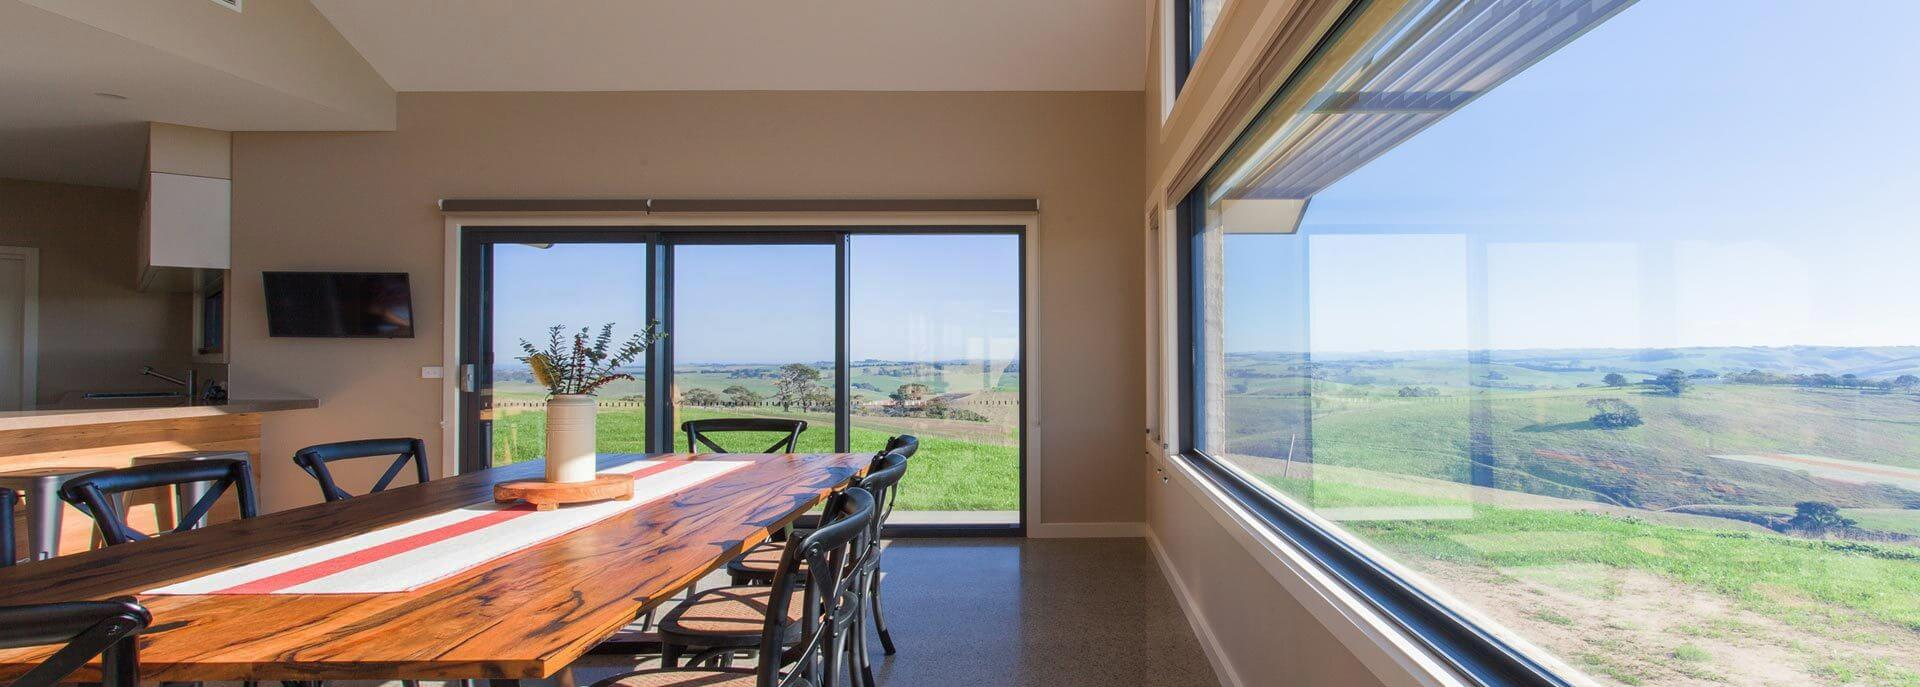 valley windows - aluminium windows melbourne